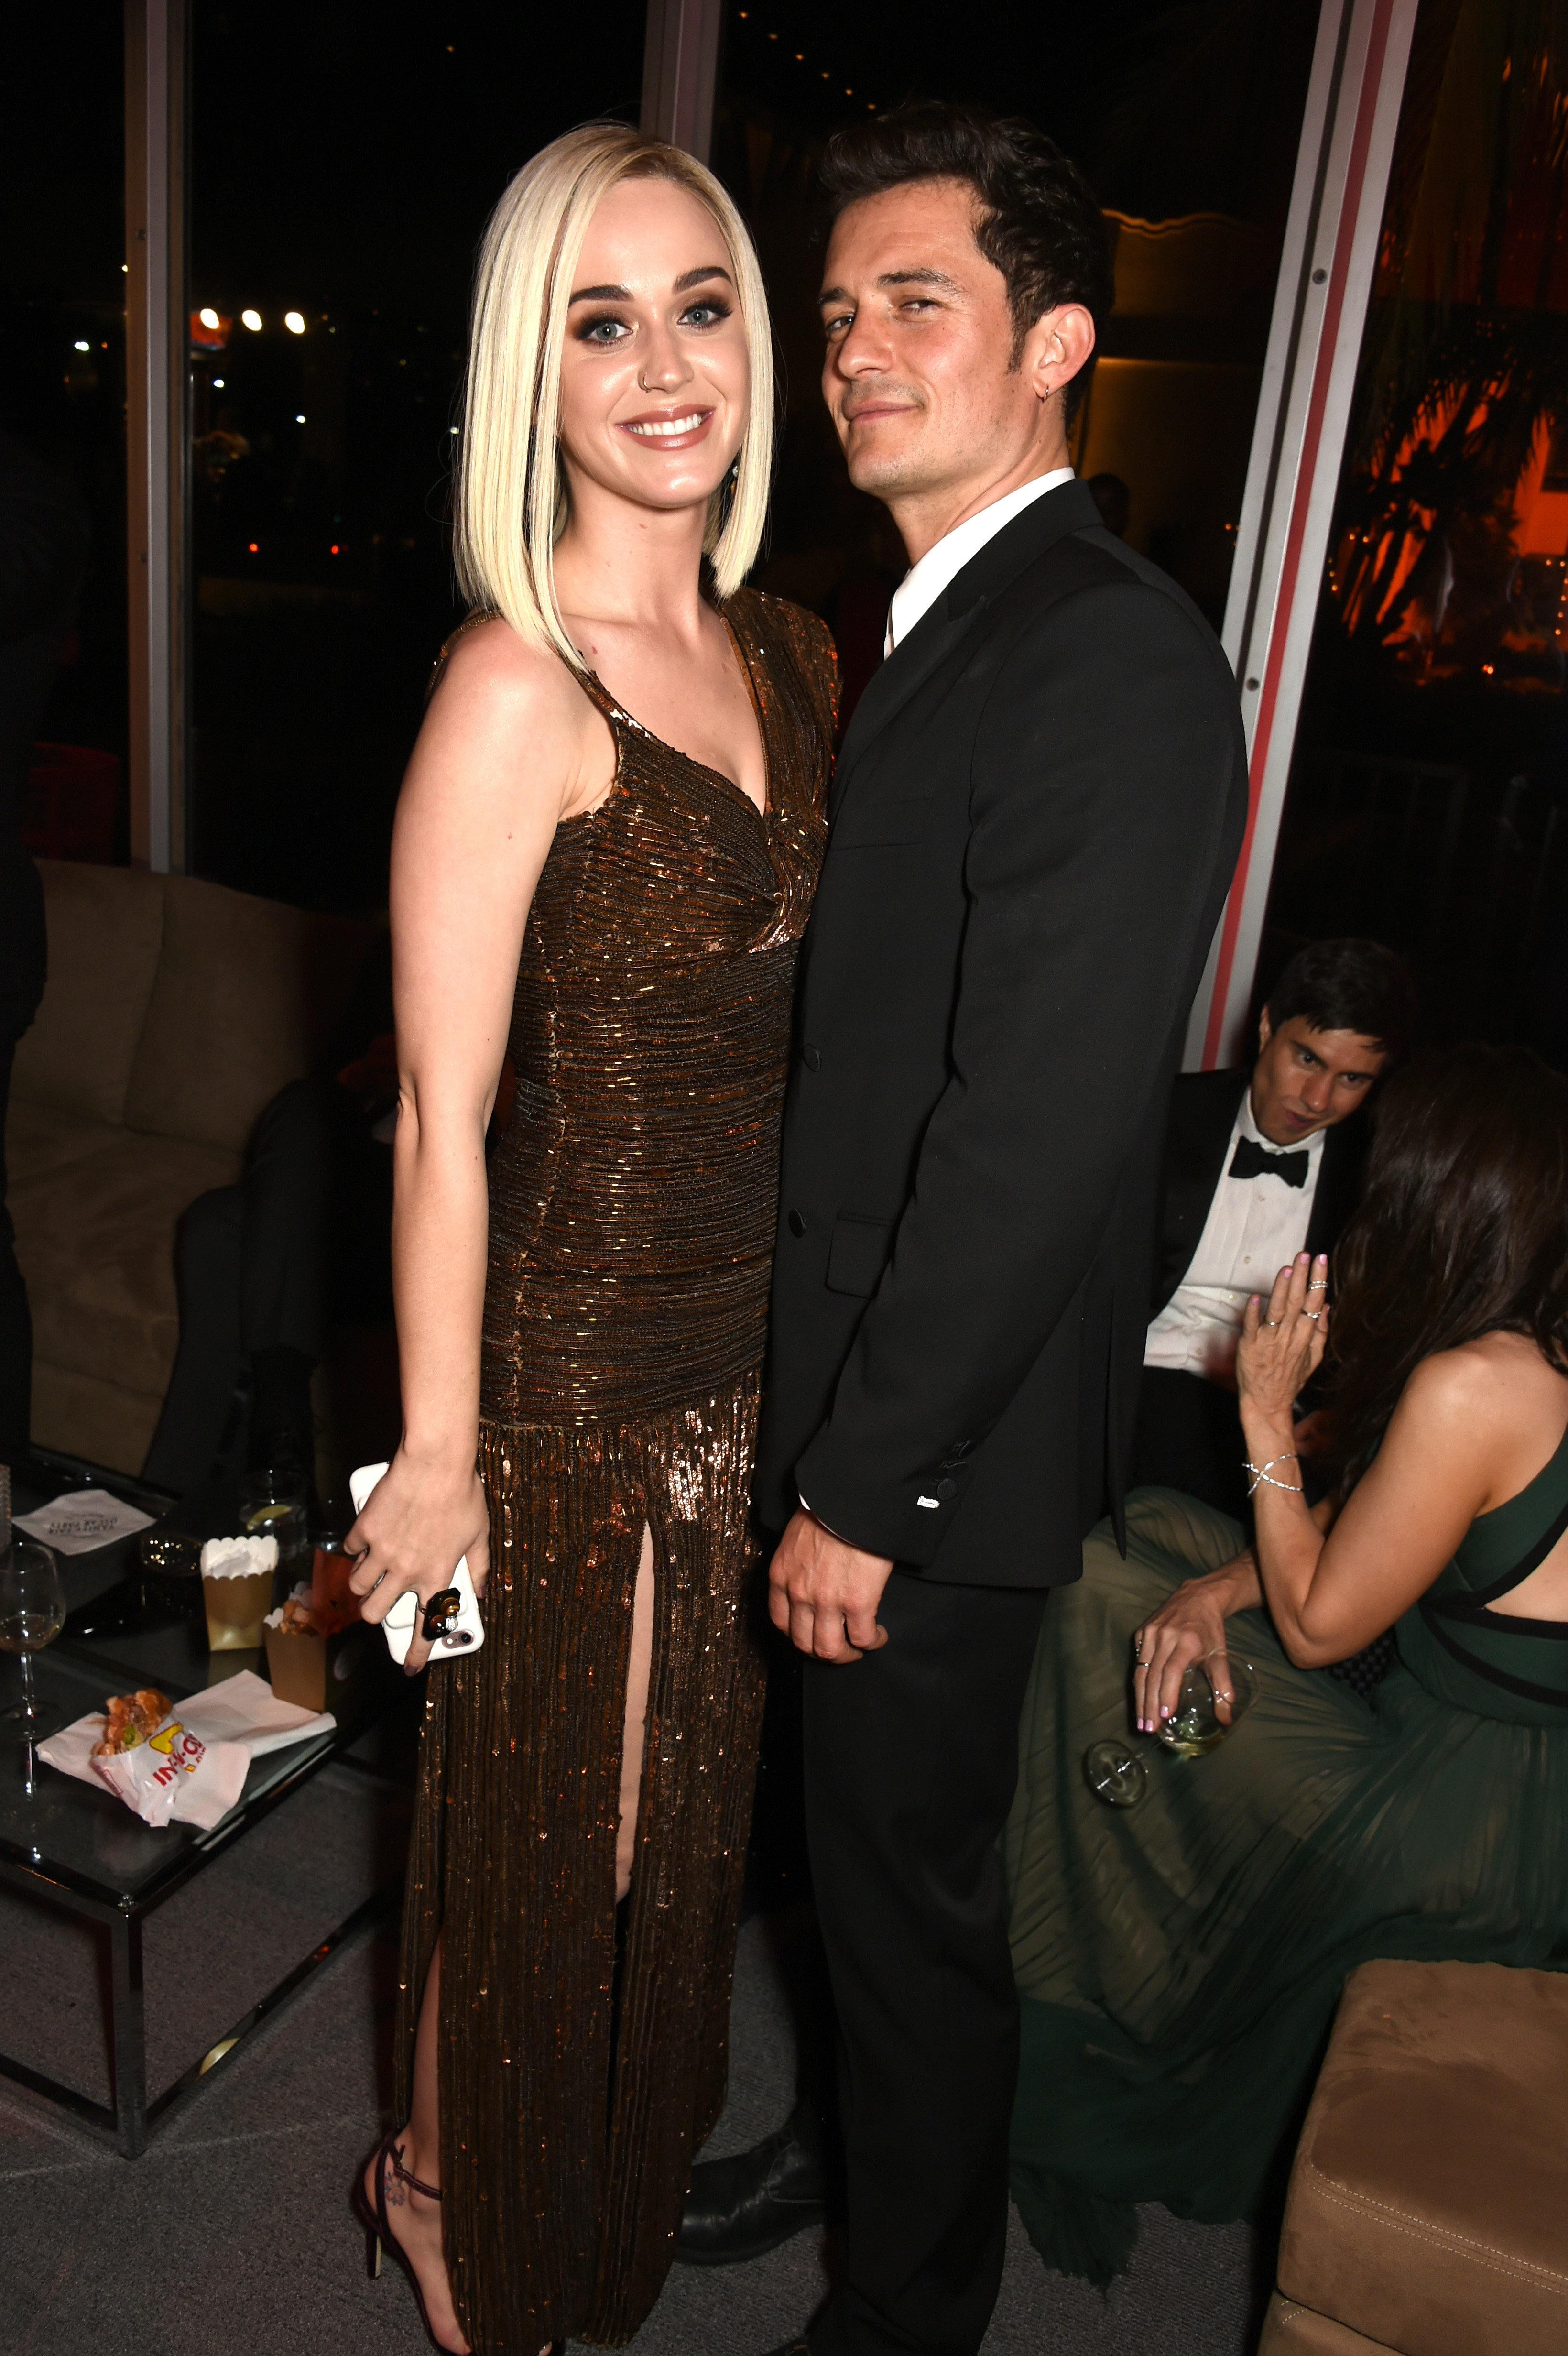 Orlando Blooms Comments About His Naked Paddle Boarding